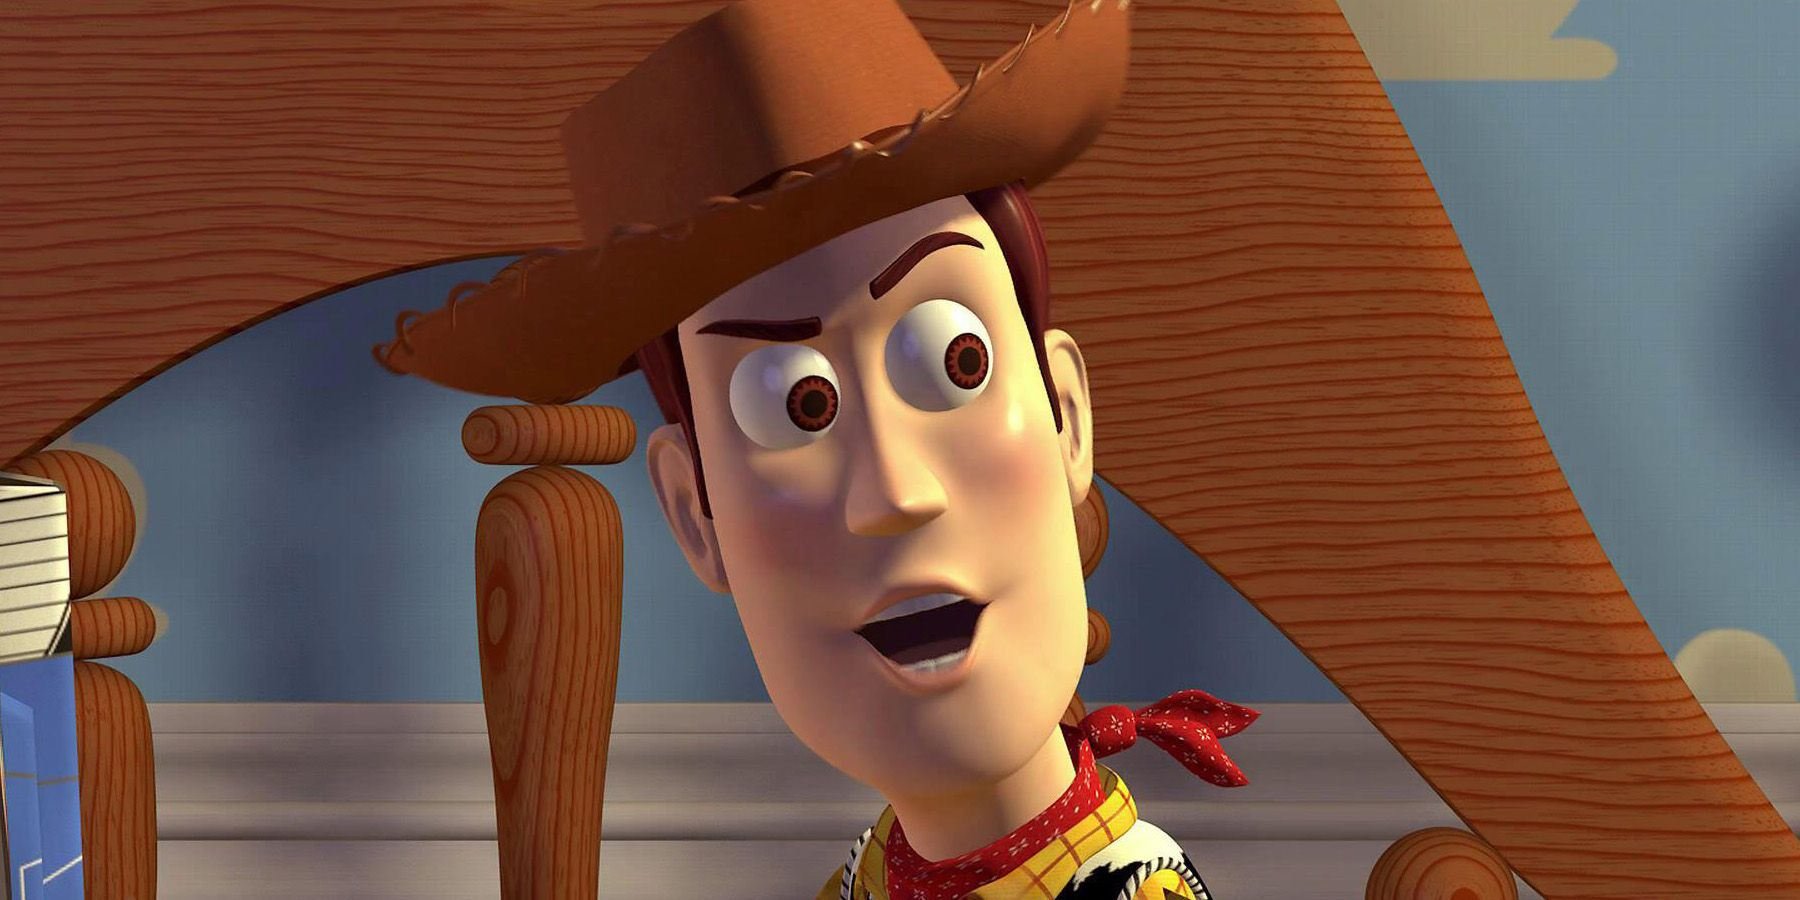 The Truth About Woodys Backstory In Toy Story Screenrant